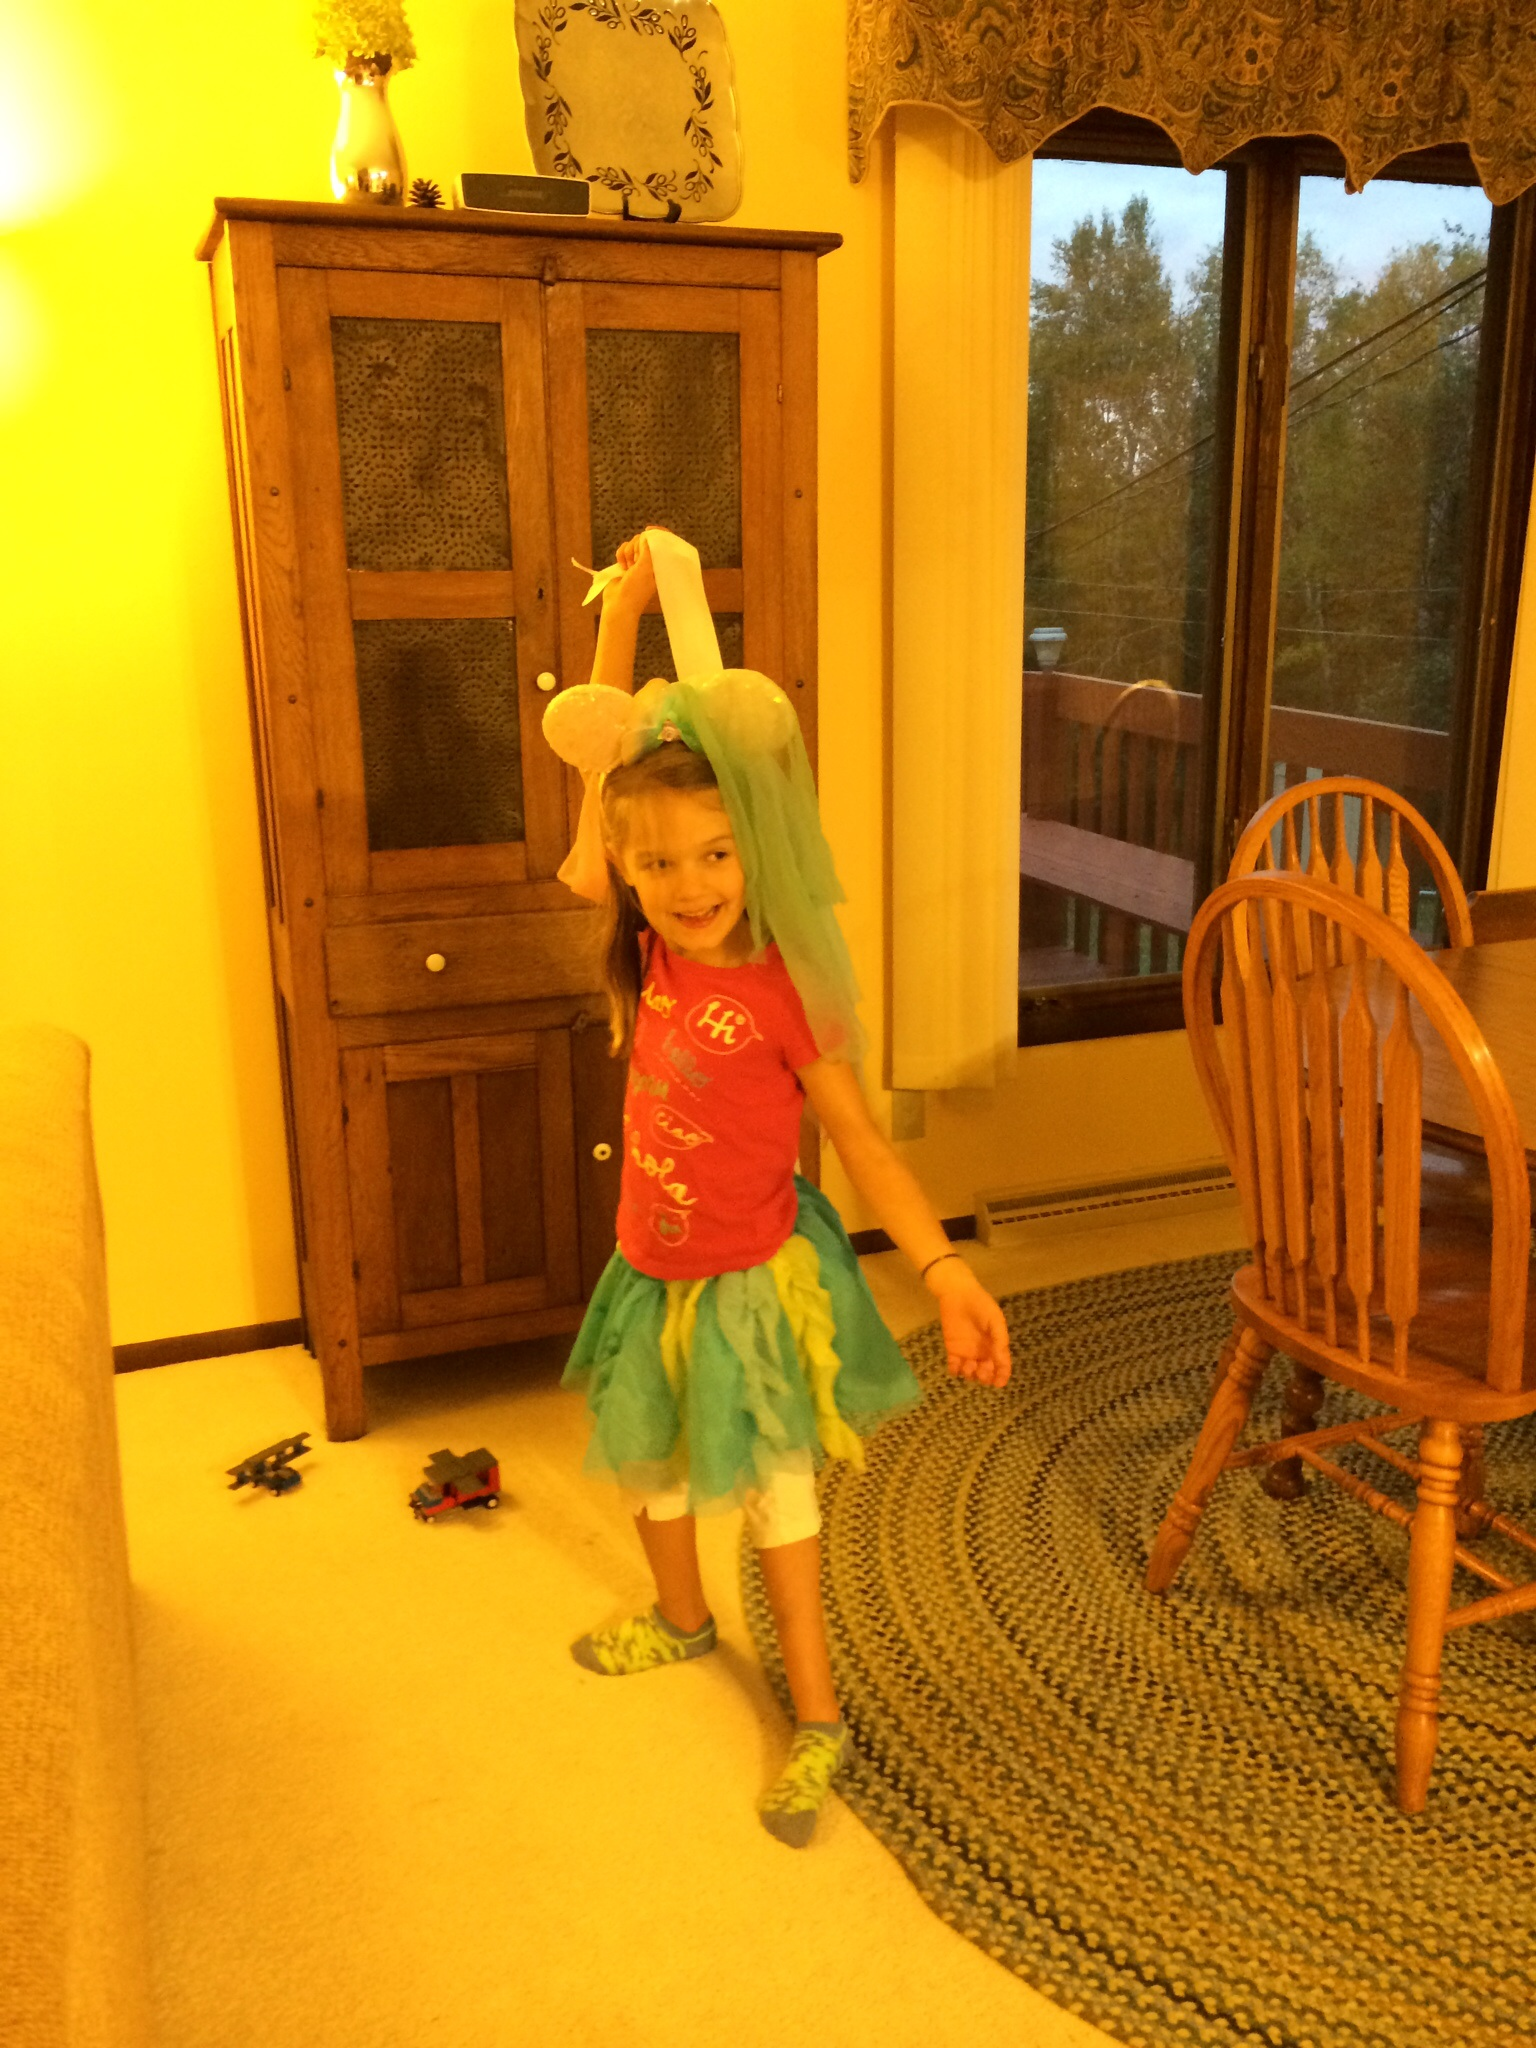 She loves to dance: gets that from my sister maybe or at least some other relative.  Definitely not from this chick.